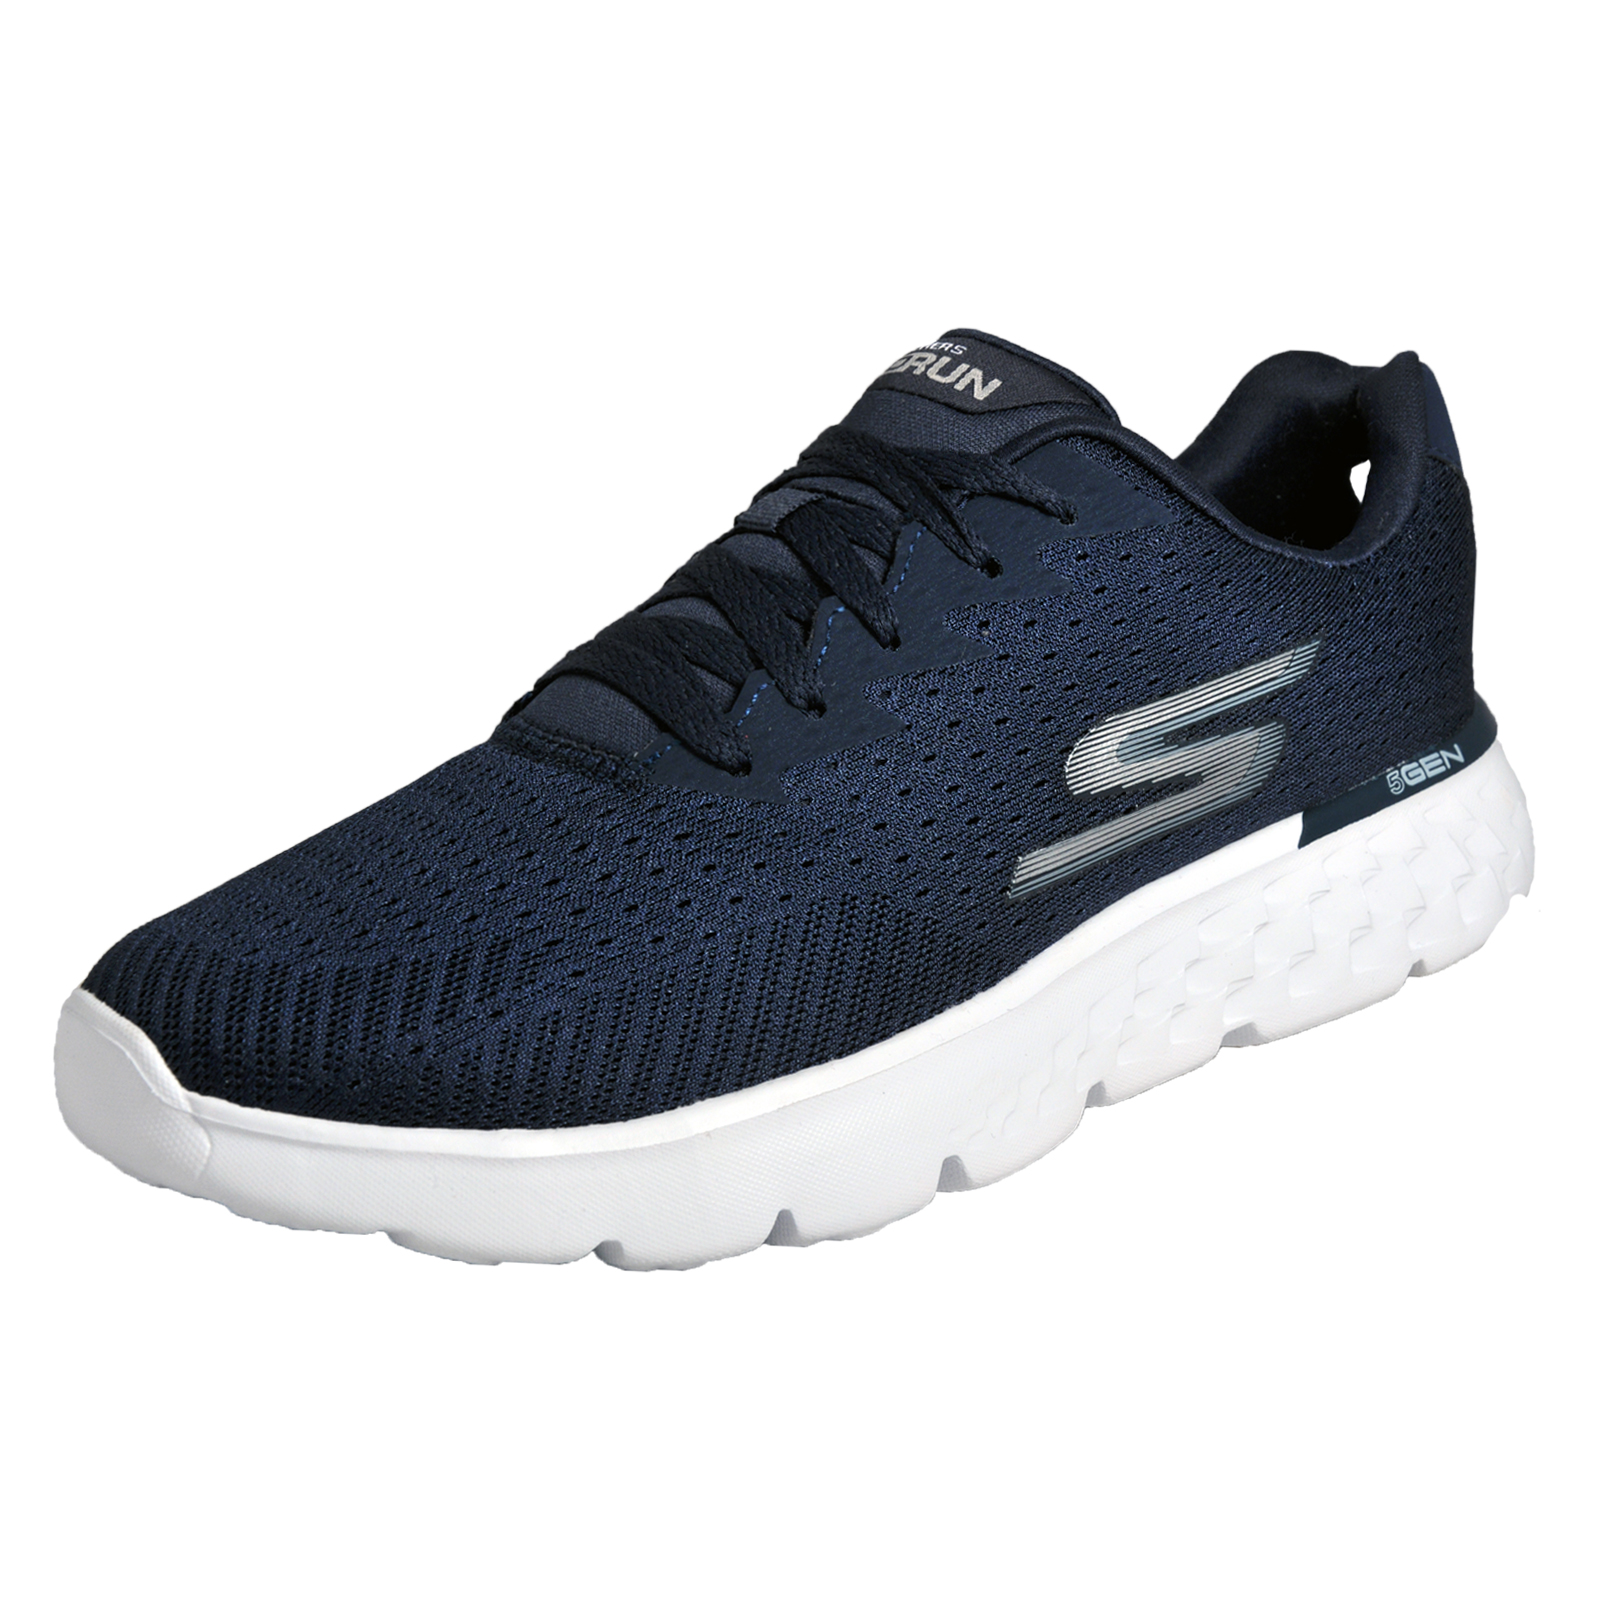 skechers go run 400 generate mens fitness gym running. Black Bedroom Furniture Sets. Home Design Ideas